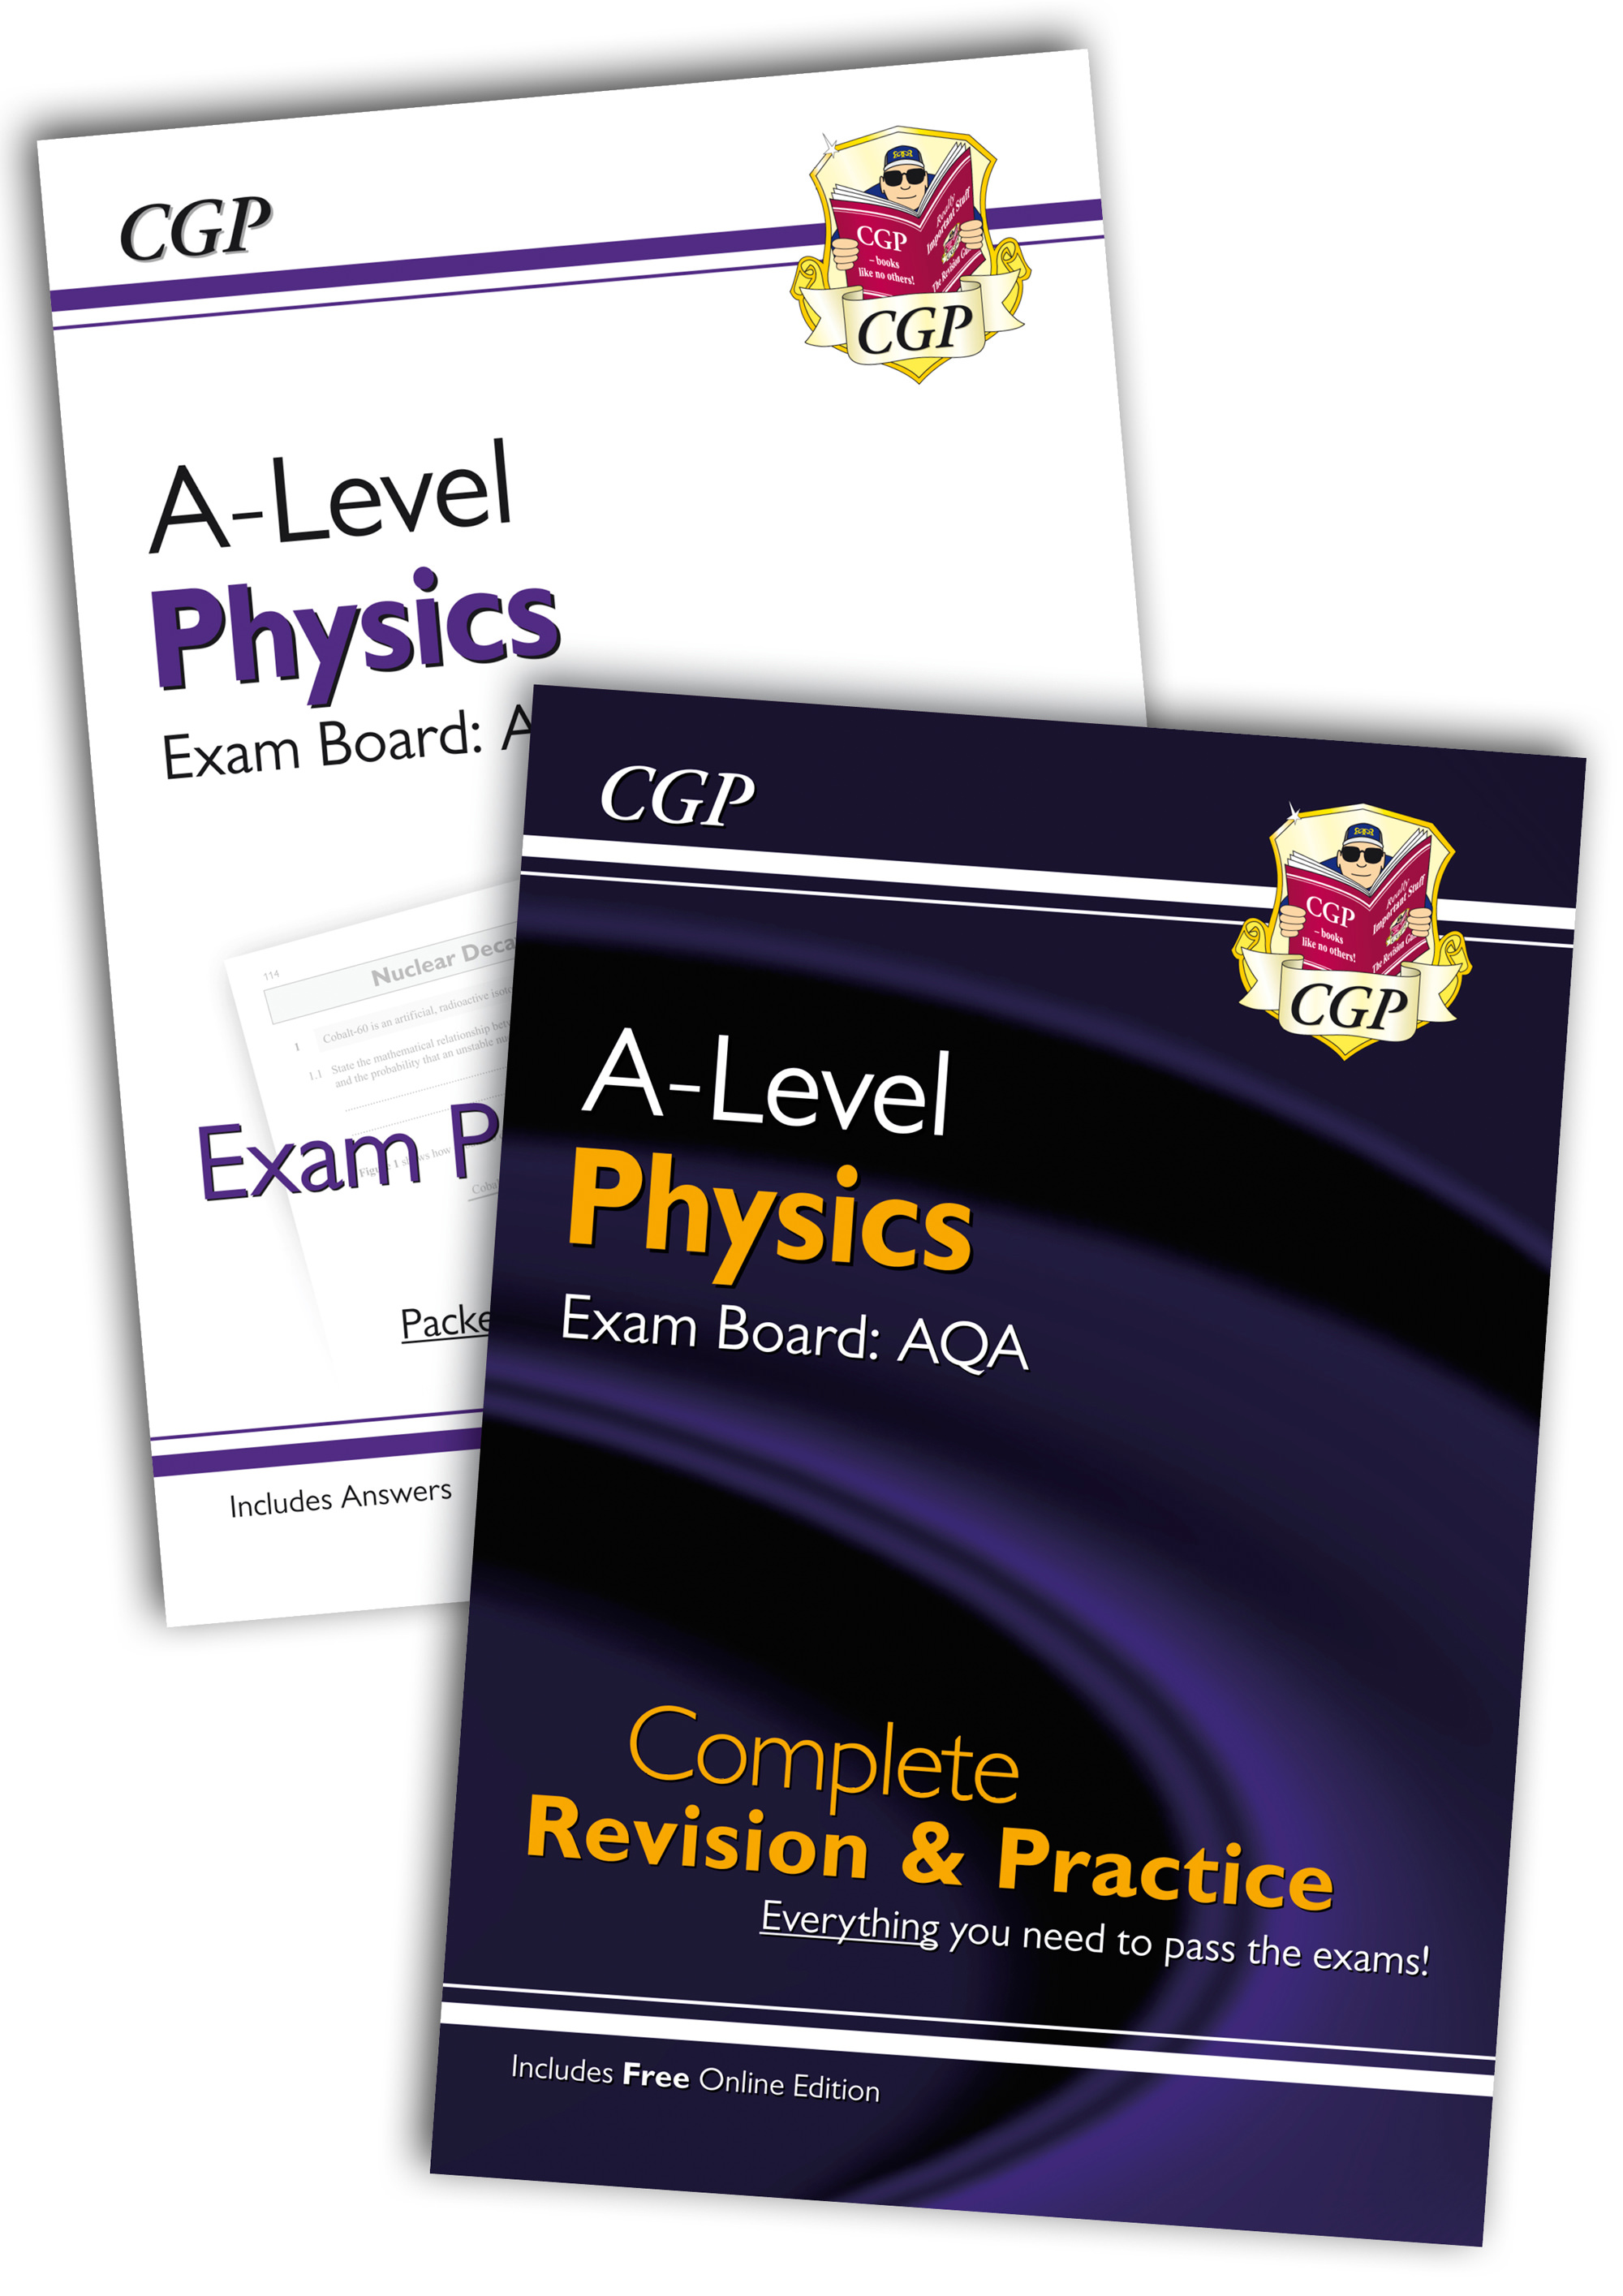 PARQB71 - New Complete Revision and Exam Practice A-Level Physics Bundle: AQA Year 1 & 2